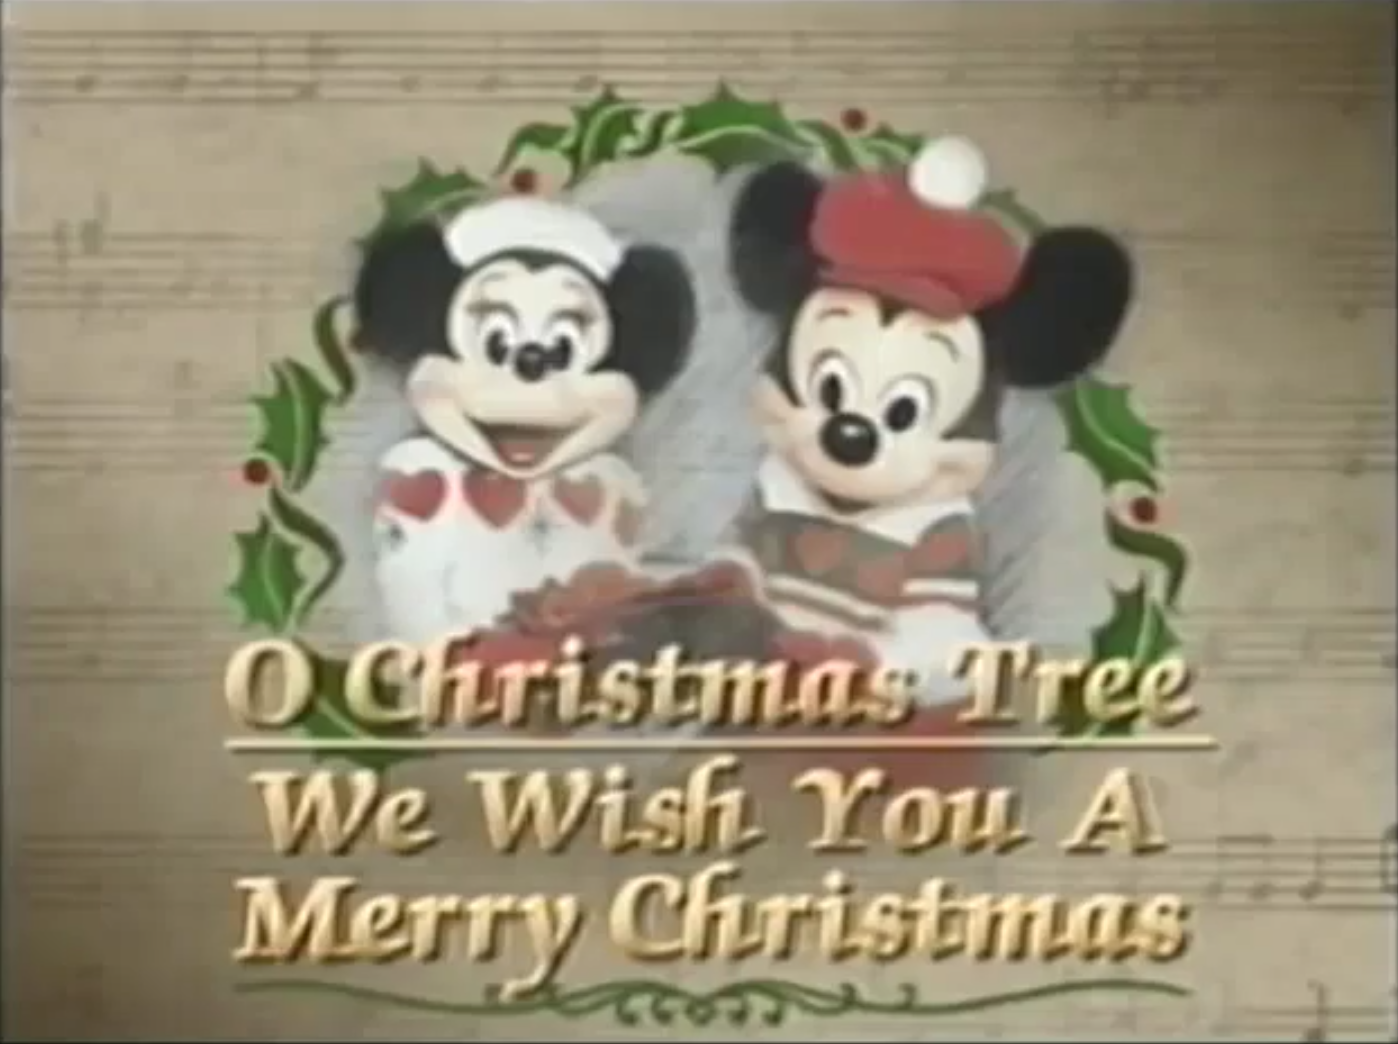 O Christmas Tree | Disney Wiki | FANDOM powered by Wikia